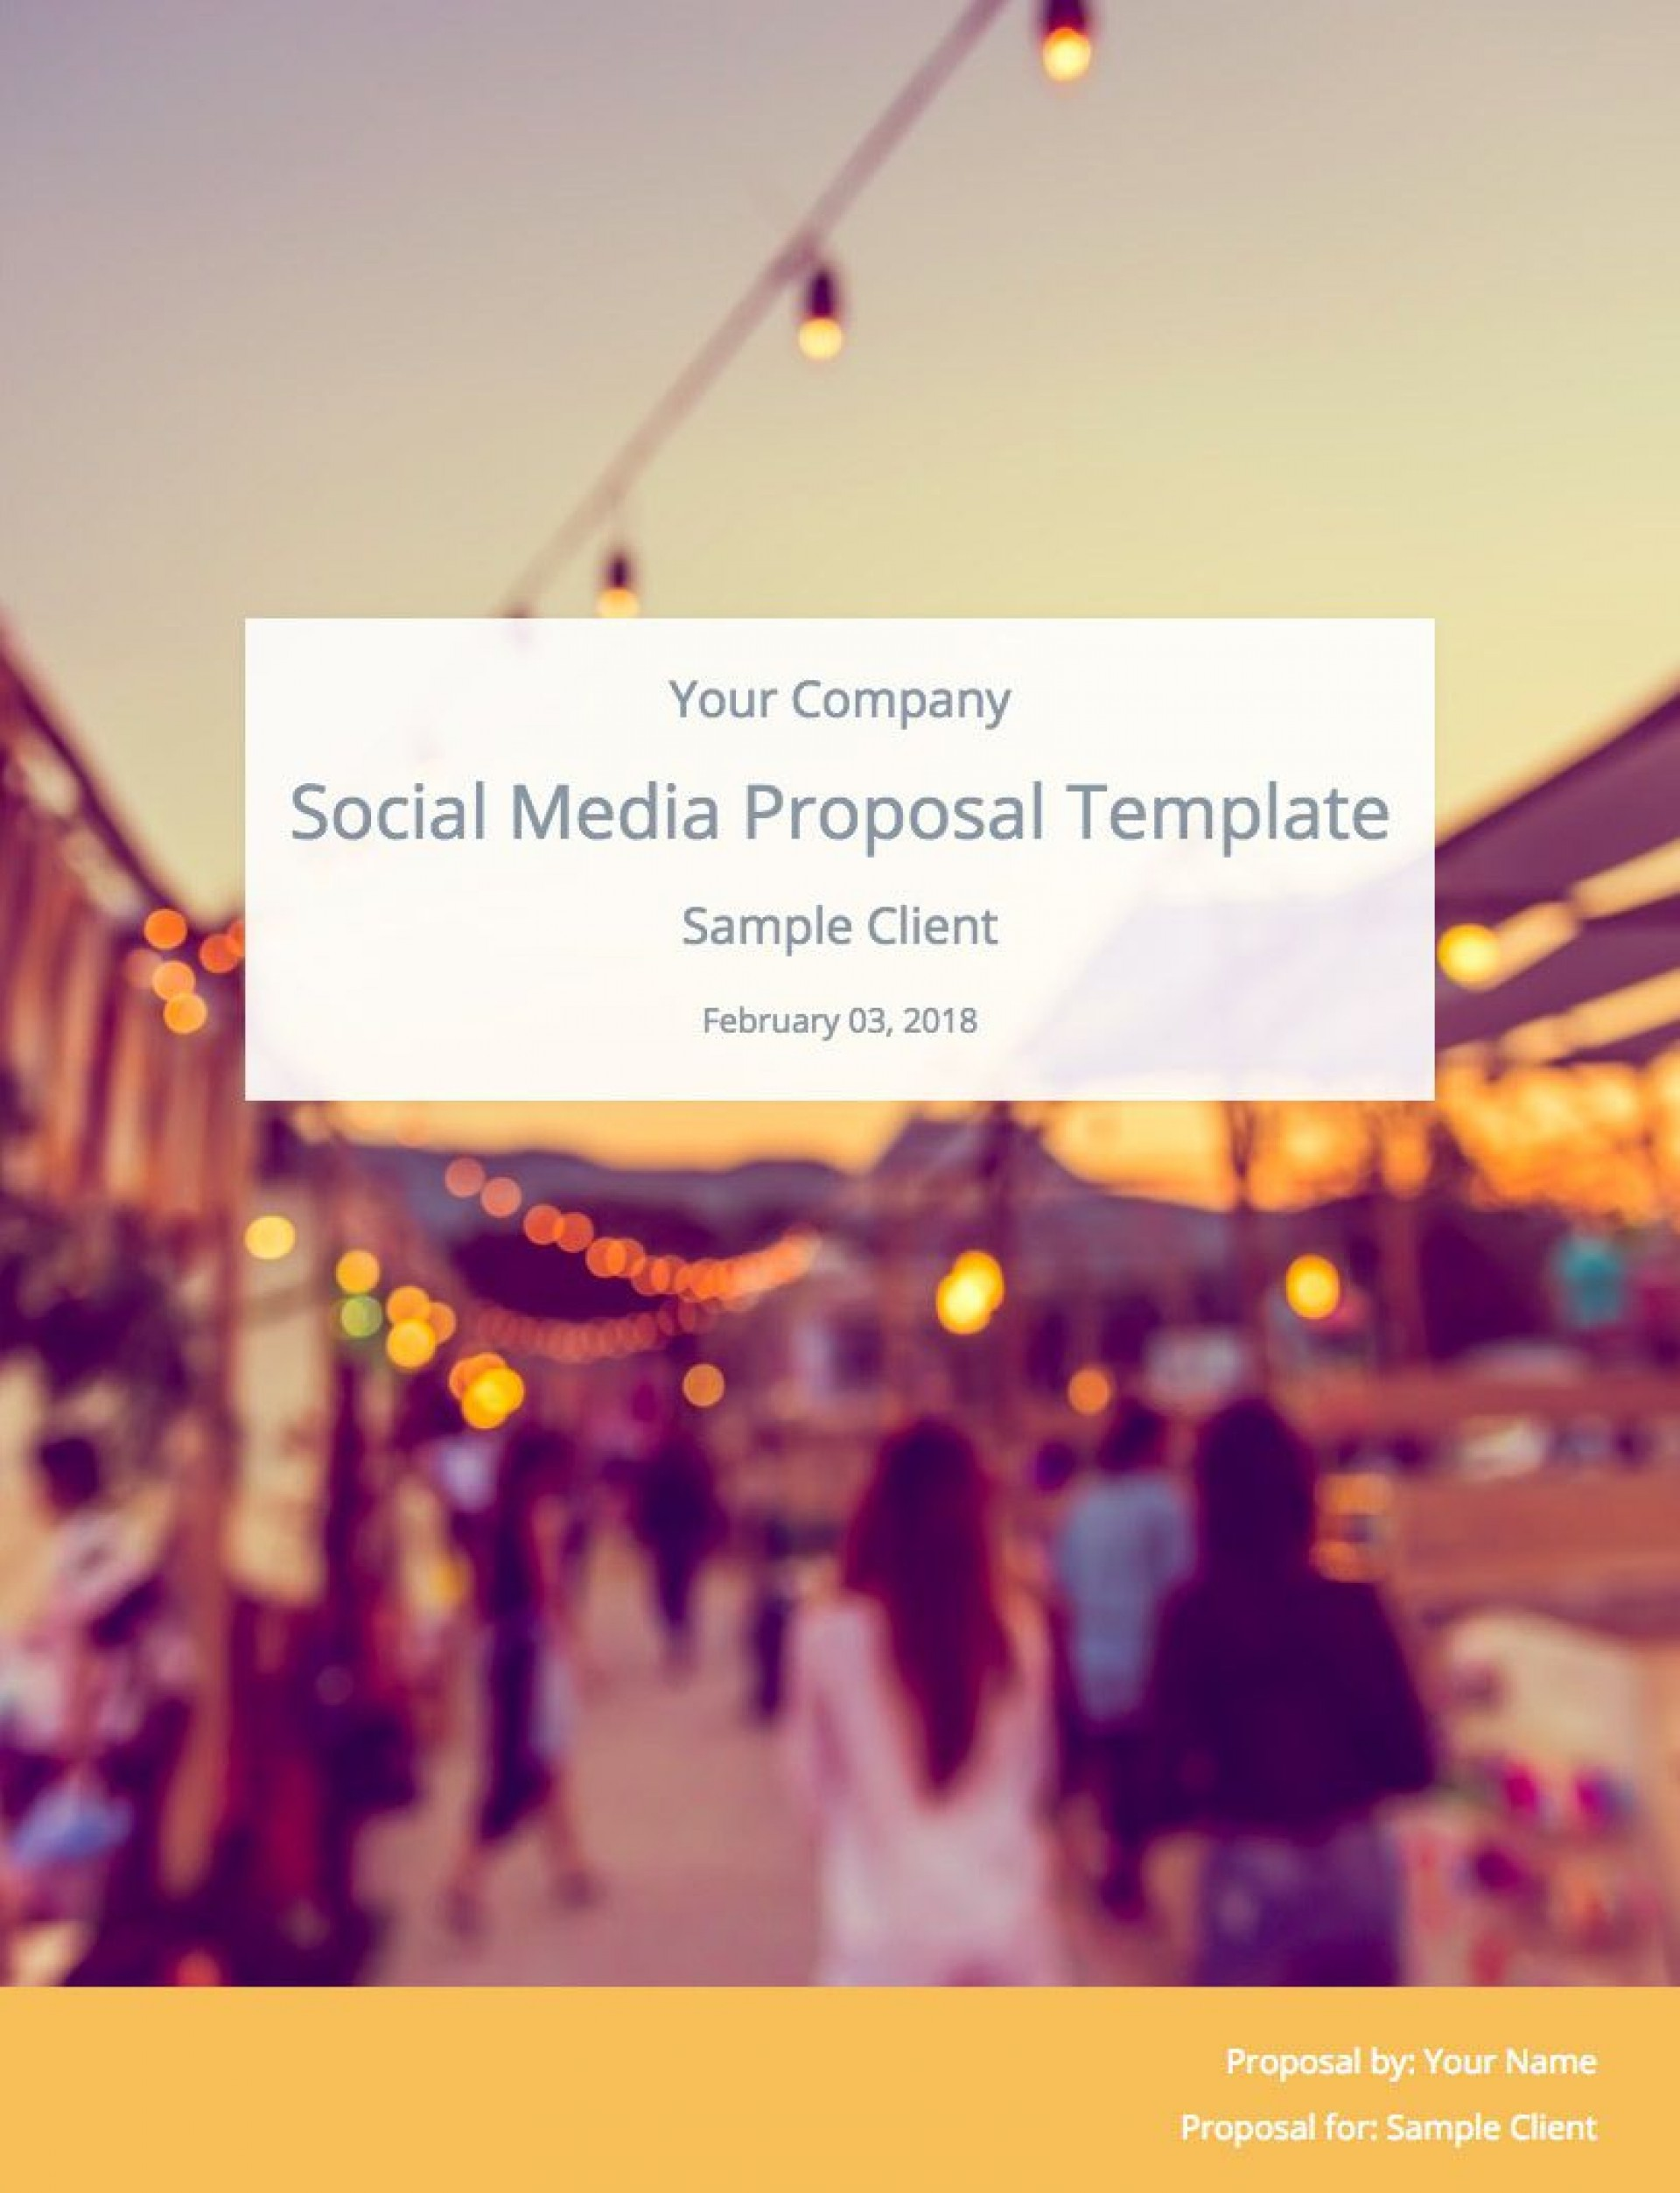 006 Striking Social Media Proposal Format High Resolution  Marketing Example Plan1920